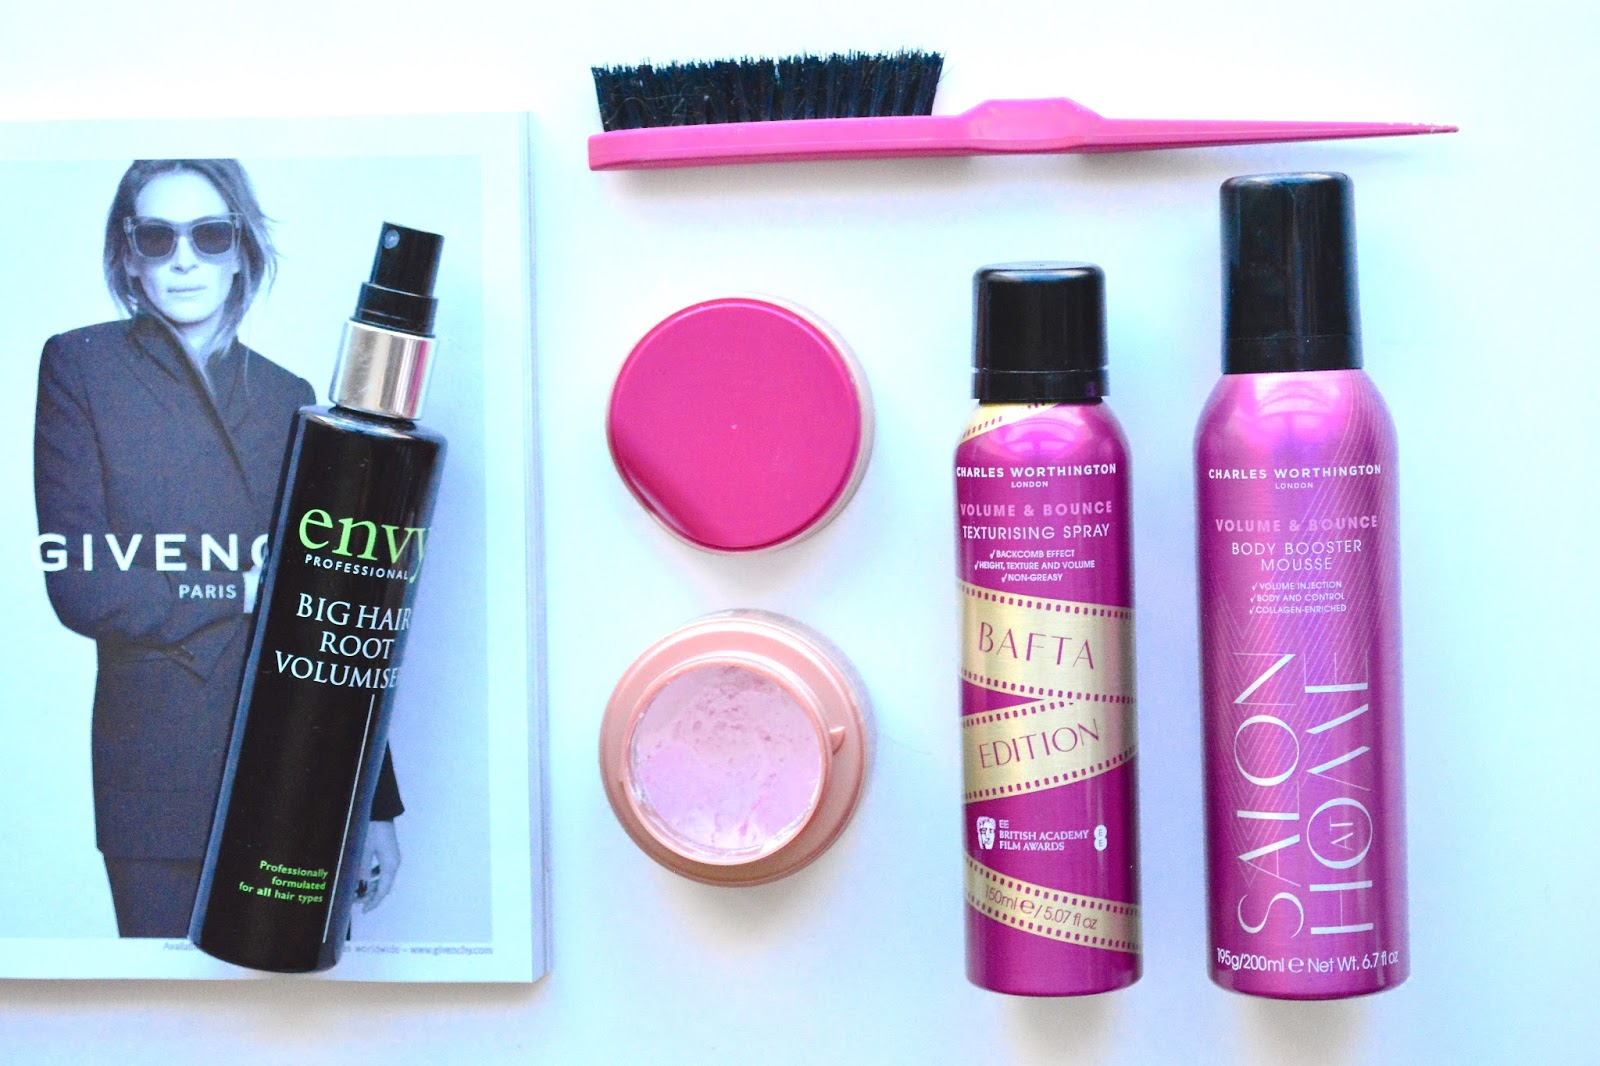 Top Five Hair Products That Give Volume & Texture! Got2b Volume and Shine Souffle, Charles Worthington Mousse, Charles Worthington Texturising Spray, Envy Professional Big Hair Root Volumiser